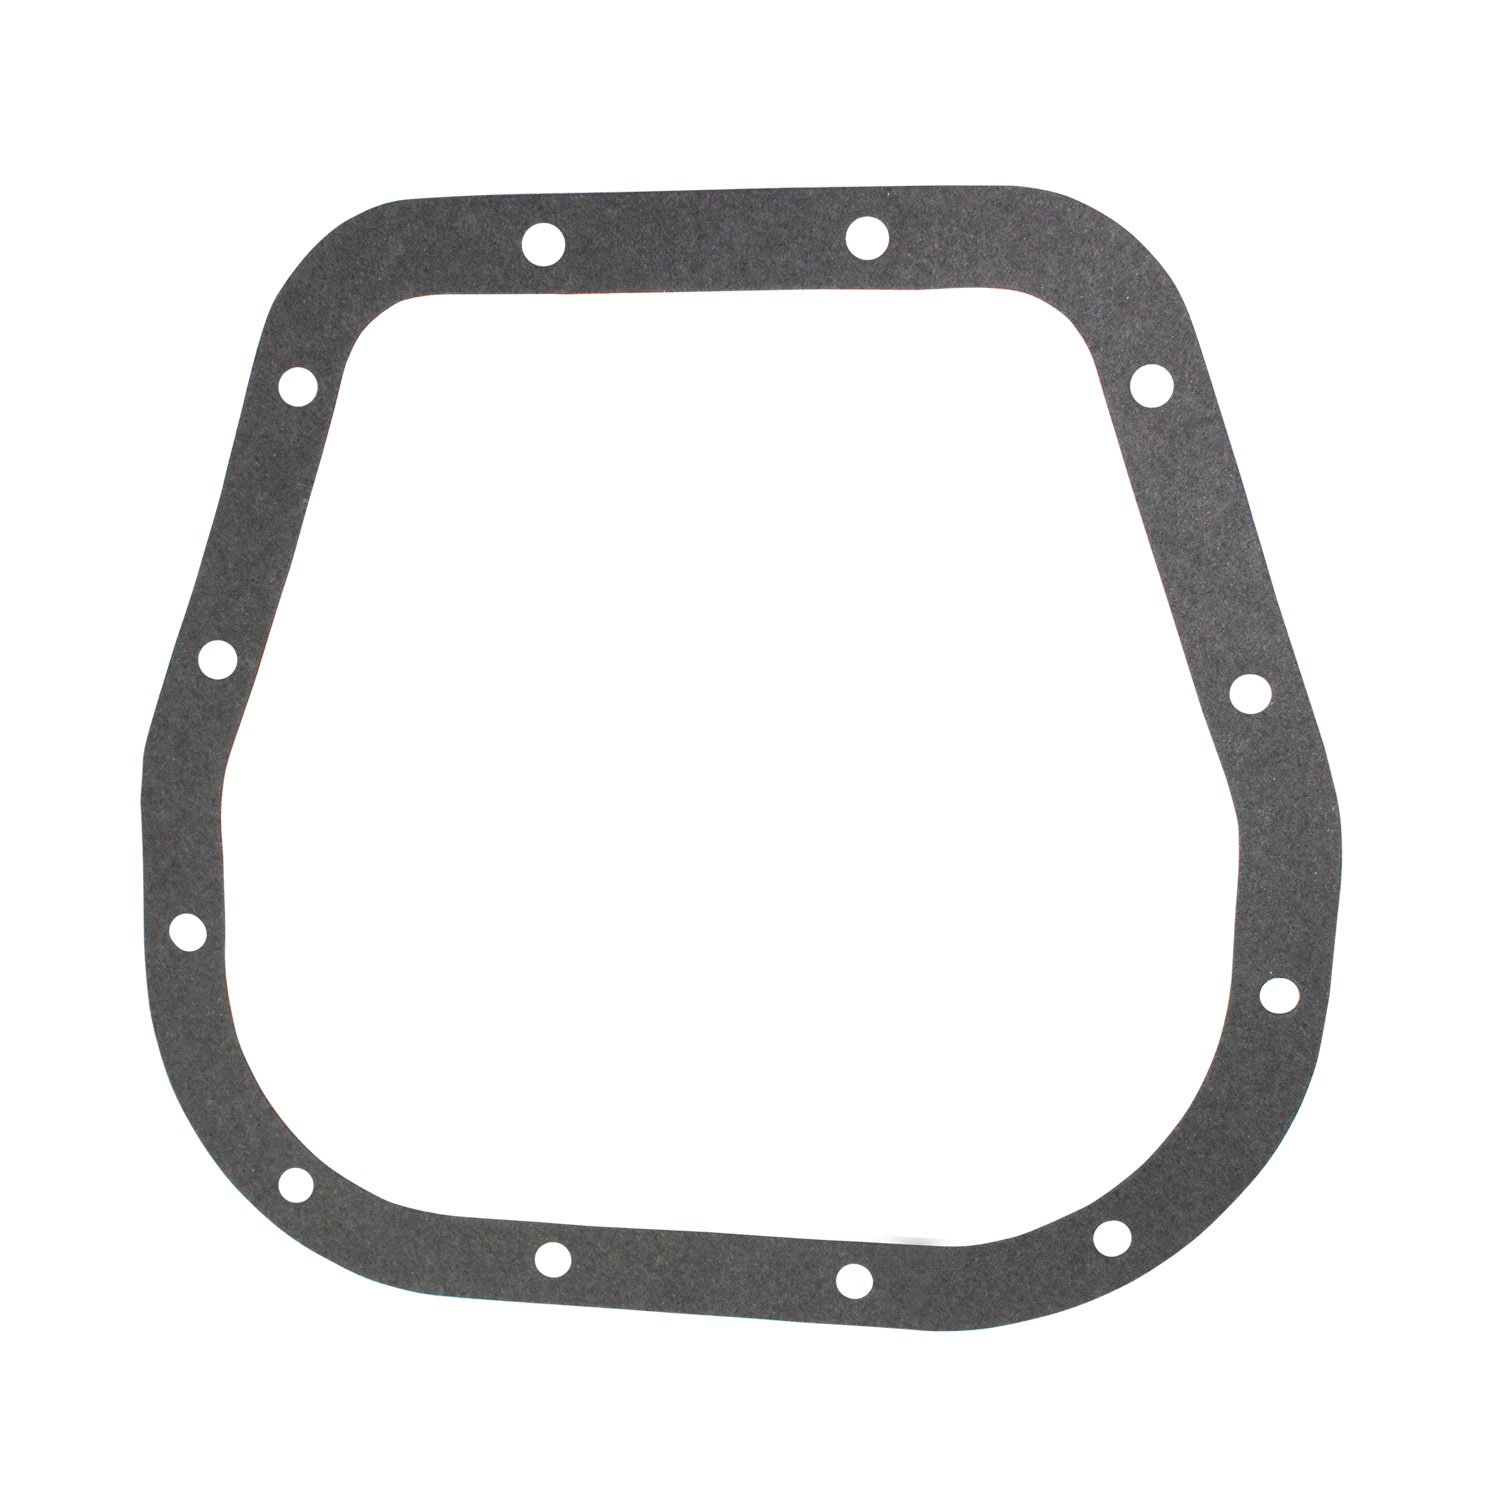 Mota Performance A96968 12 Bolt Differential Cover Gasket for Ford 9.75' R.G.